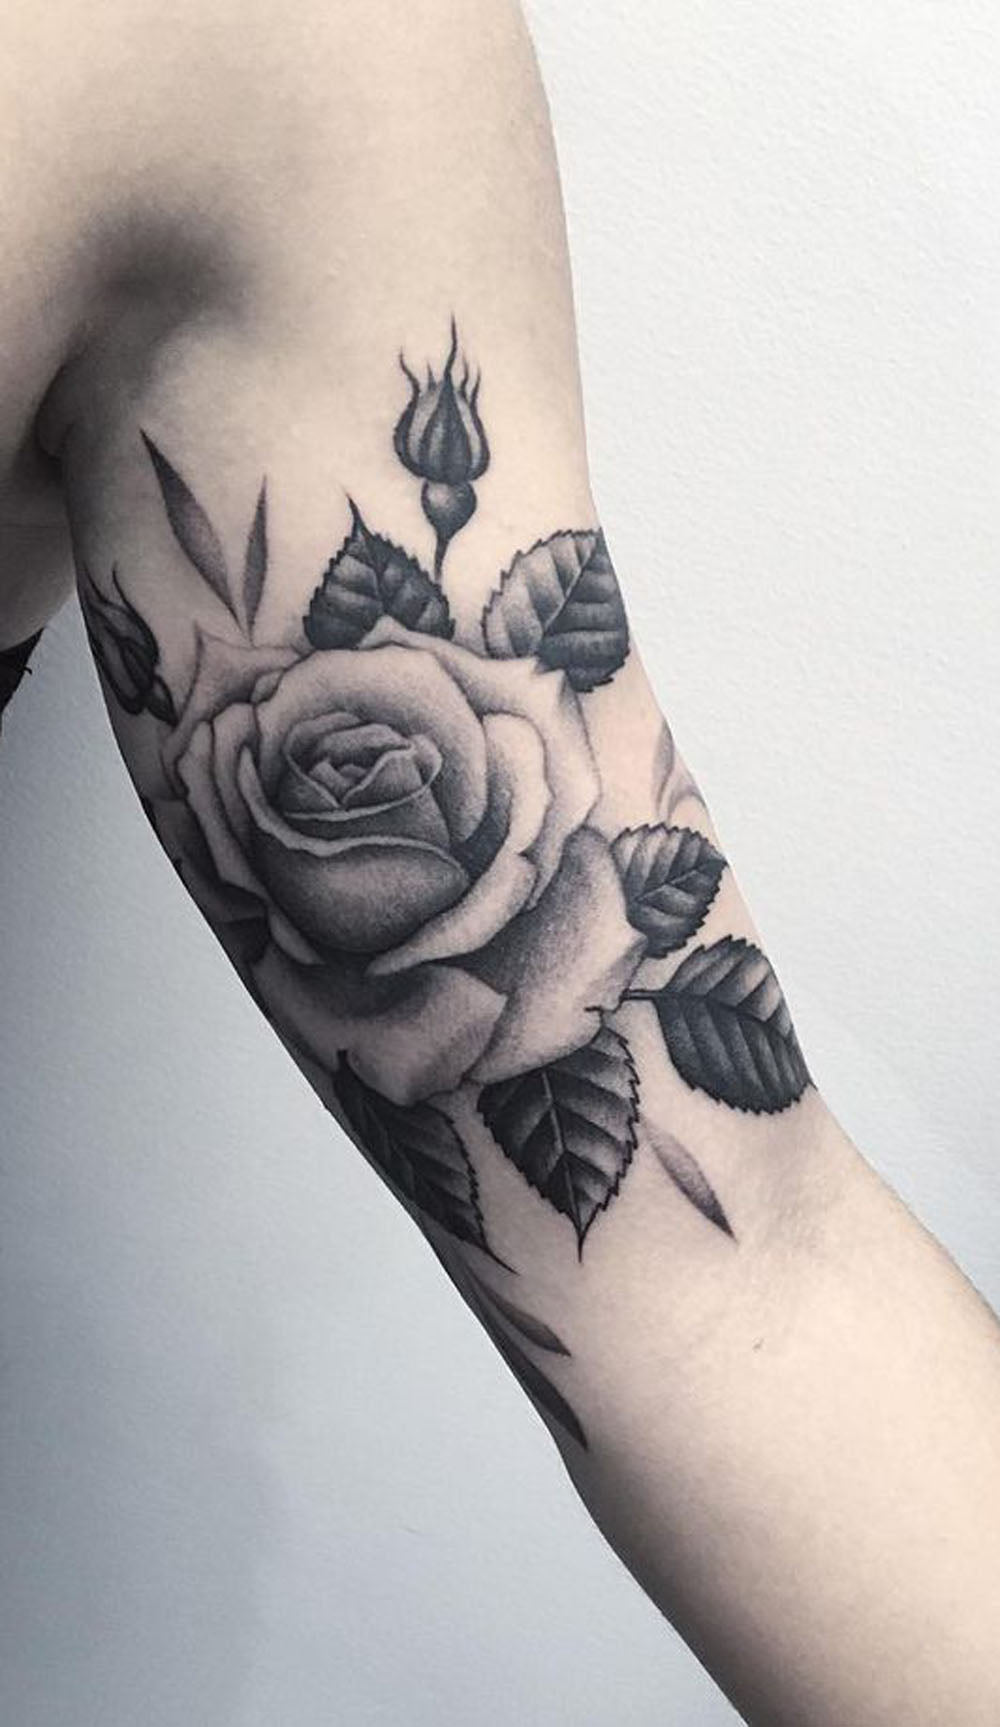 Realistic Black and White Rose Bicep Arm Tattoo Ideas for Women - www.MyBodiArt.com